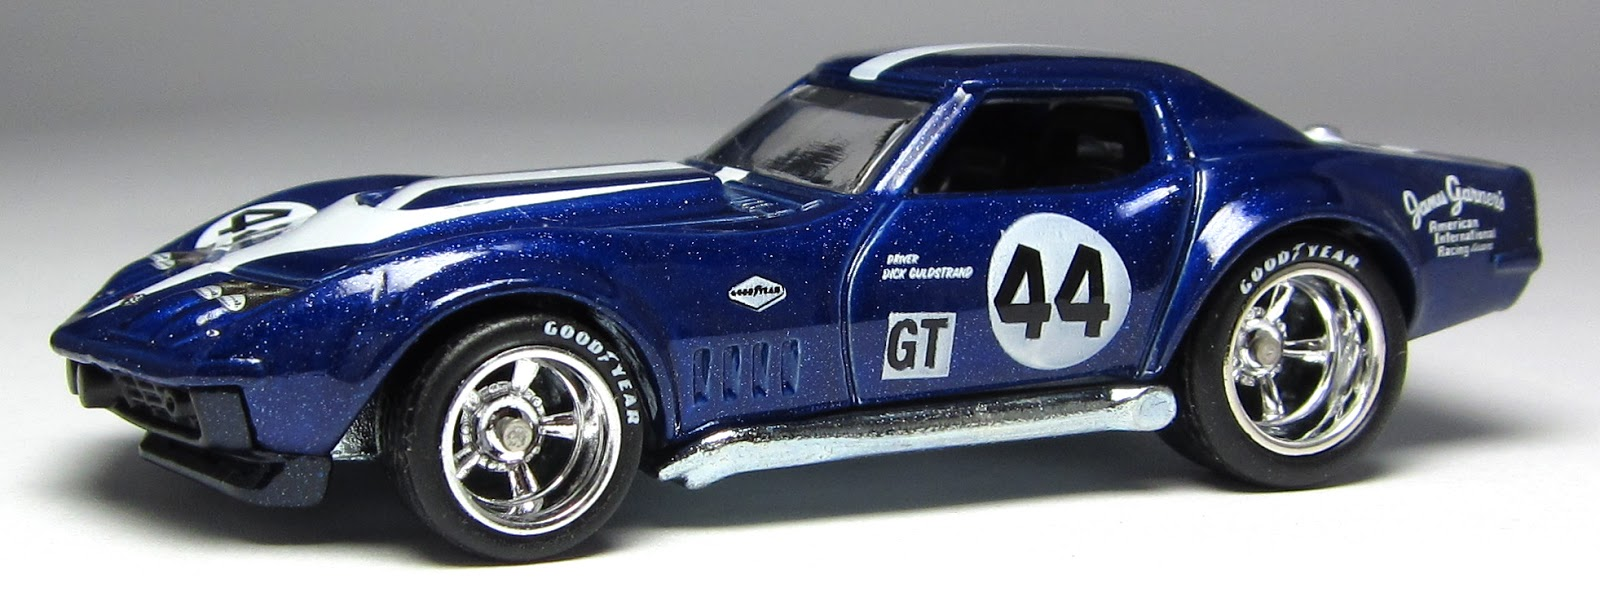 the Lamley Group  Model of the Day  Hot Wheels Racing James Garner